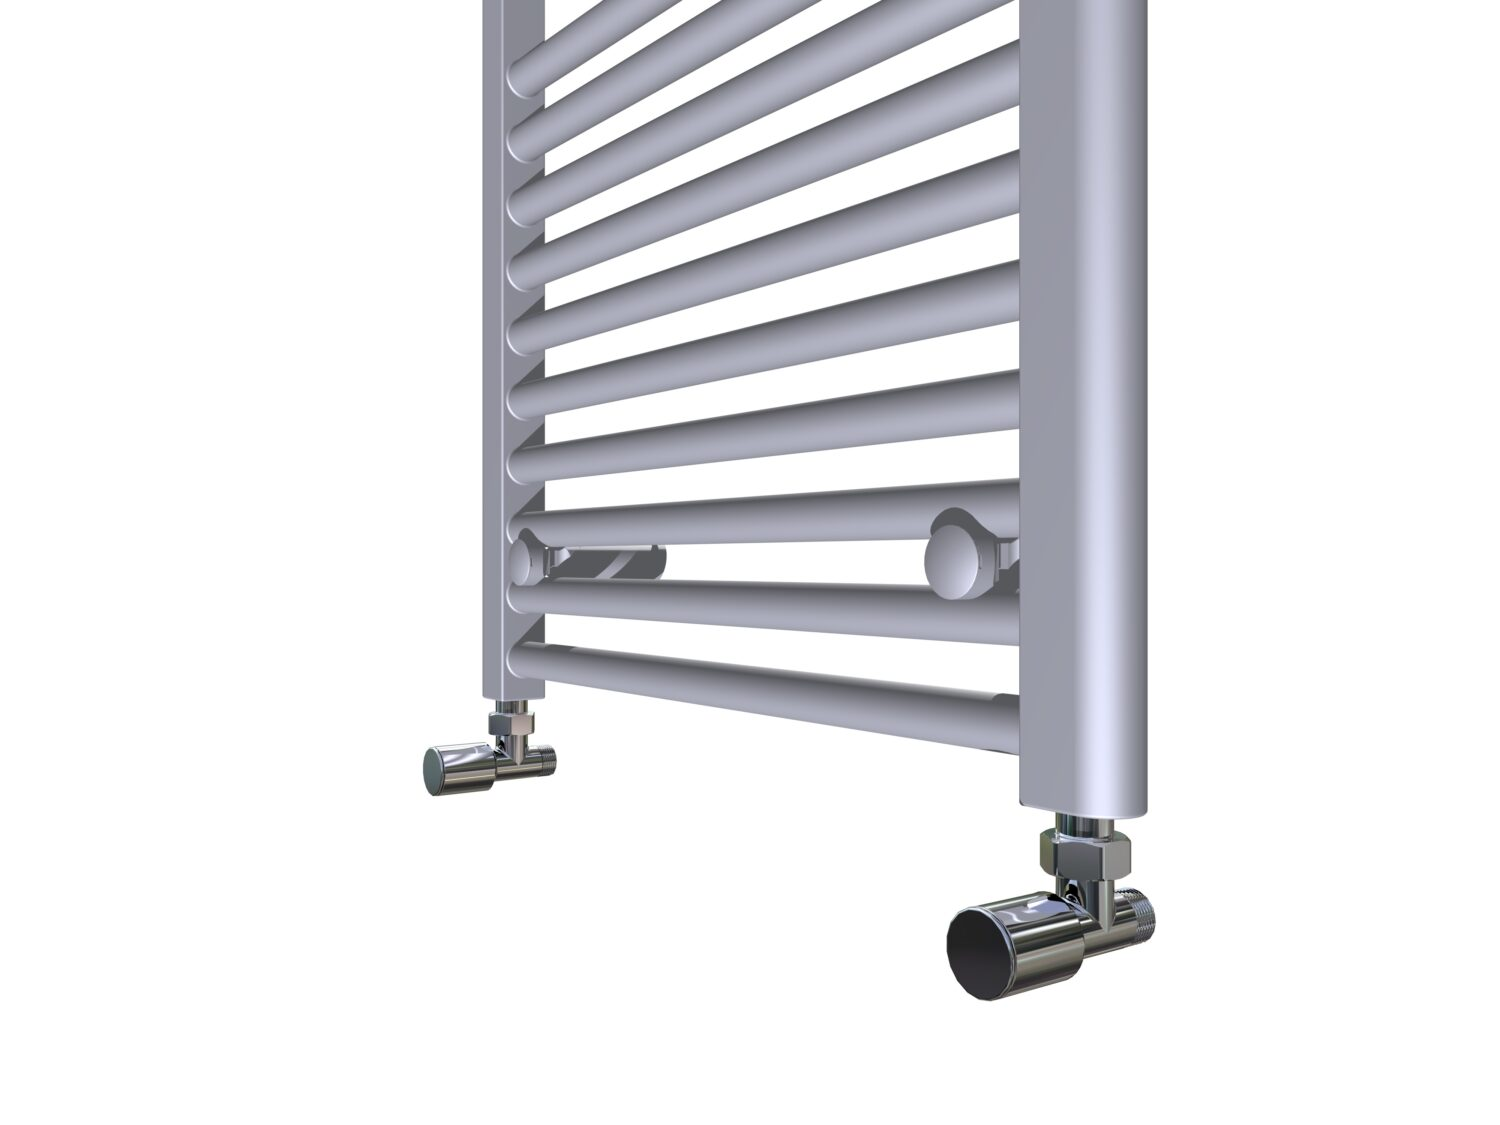 Radiatorkraan Recht Design Radiatorkraan Chrome Douchecabine Be